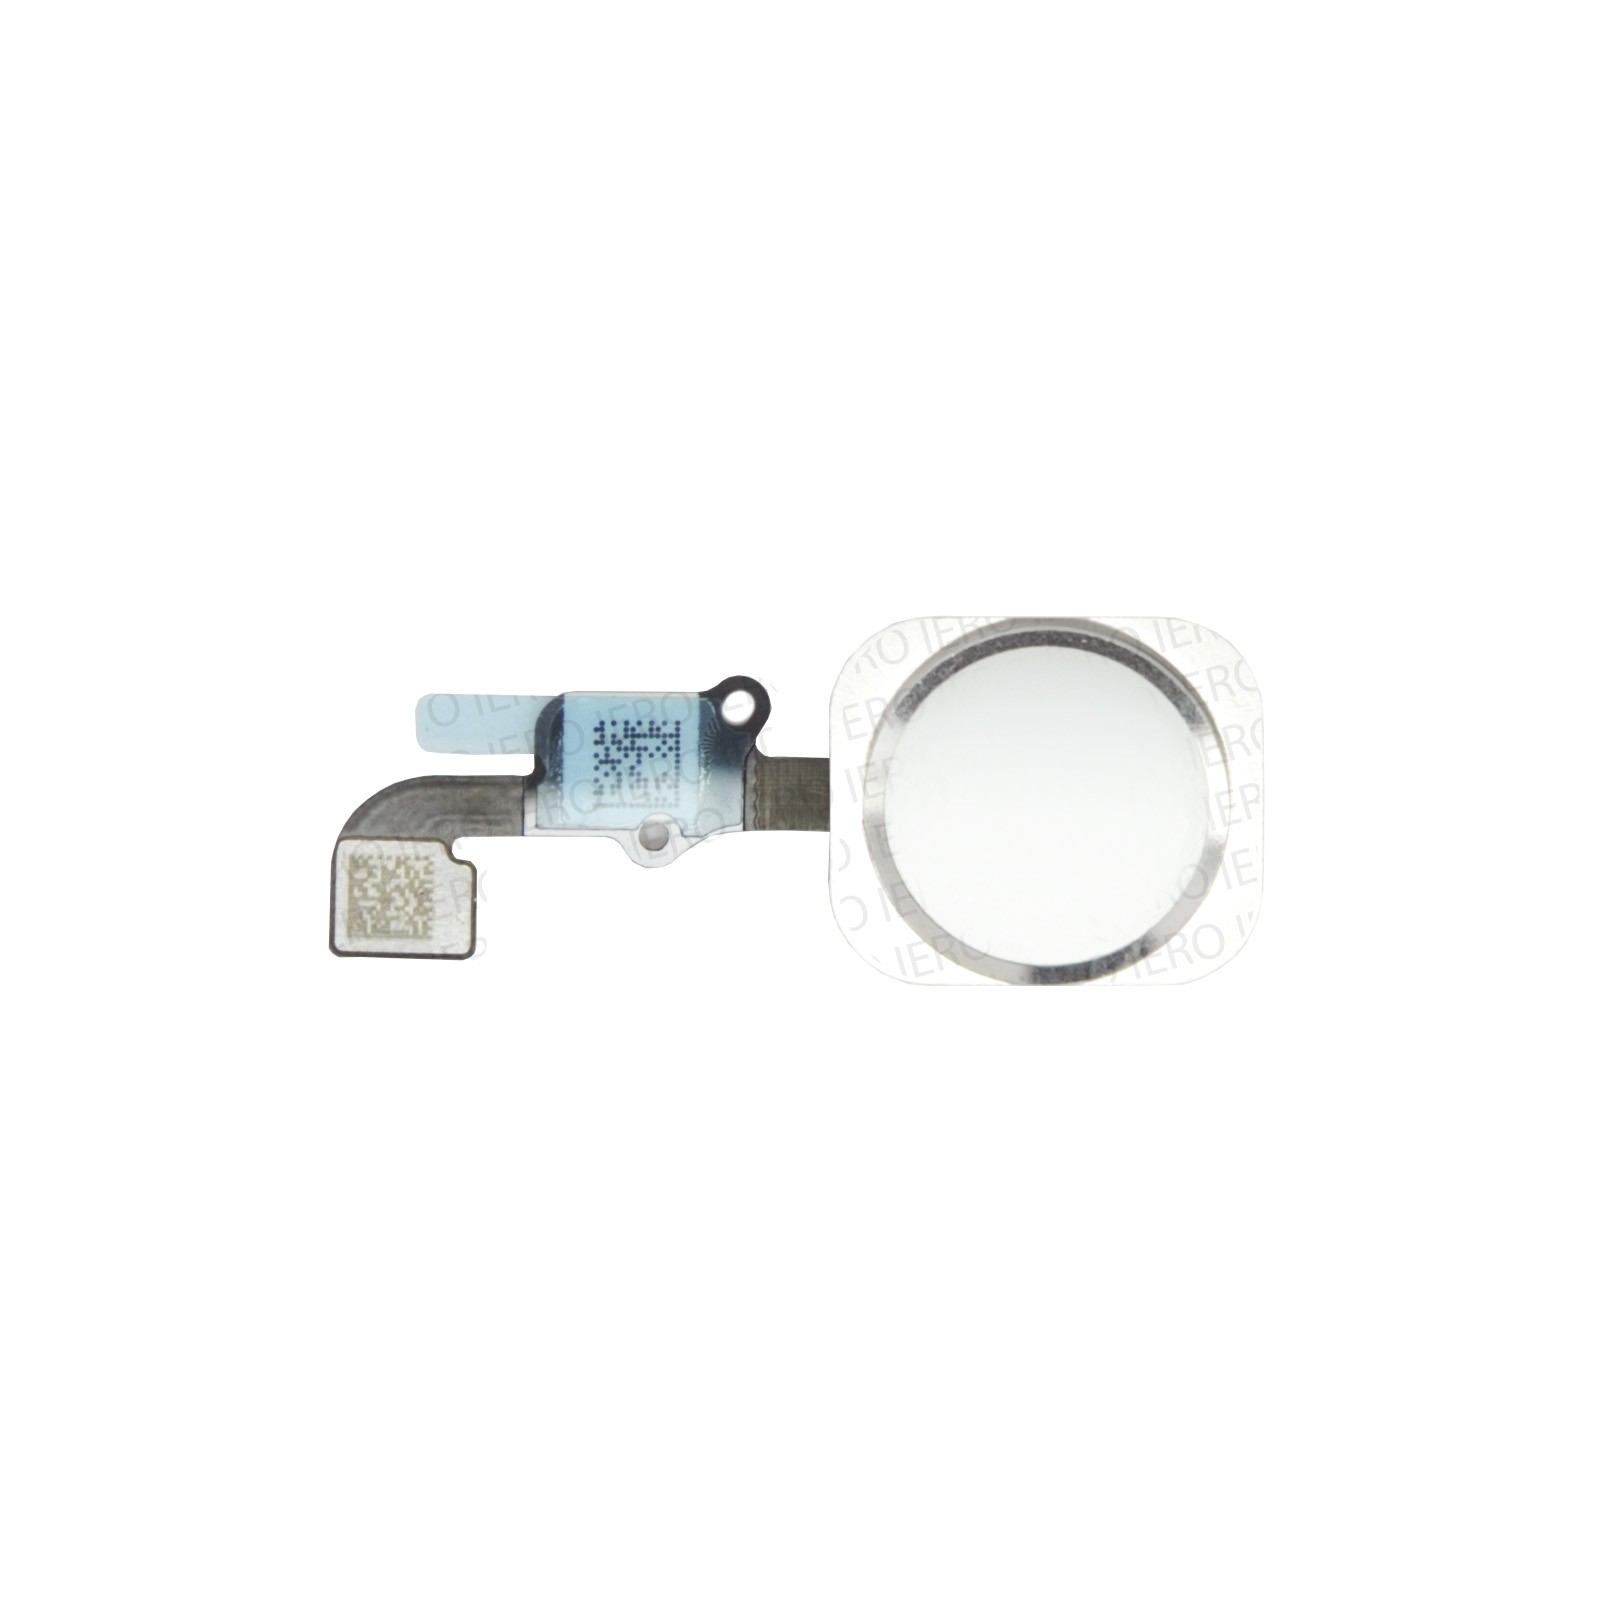 Home Button Fingerprint Sensor Reader Replacement for iPhone 6 & 6 Plus White